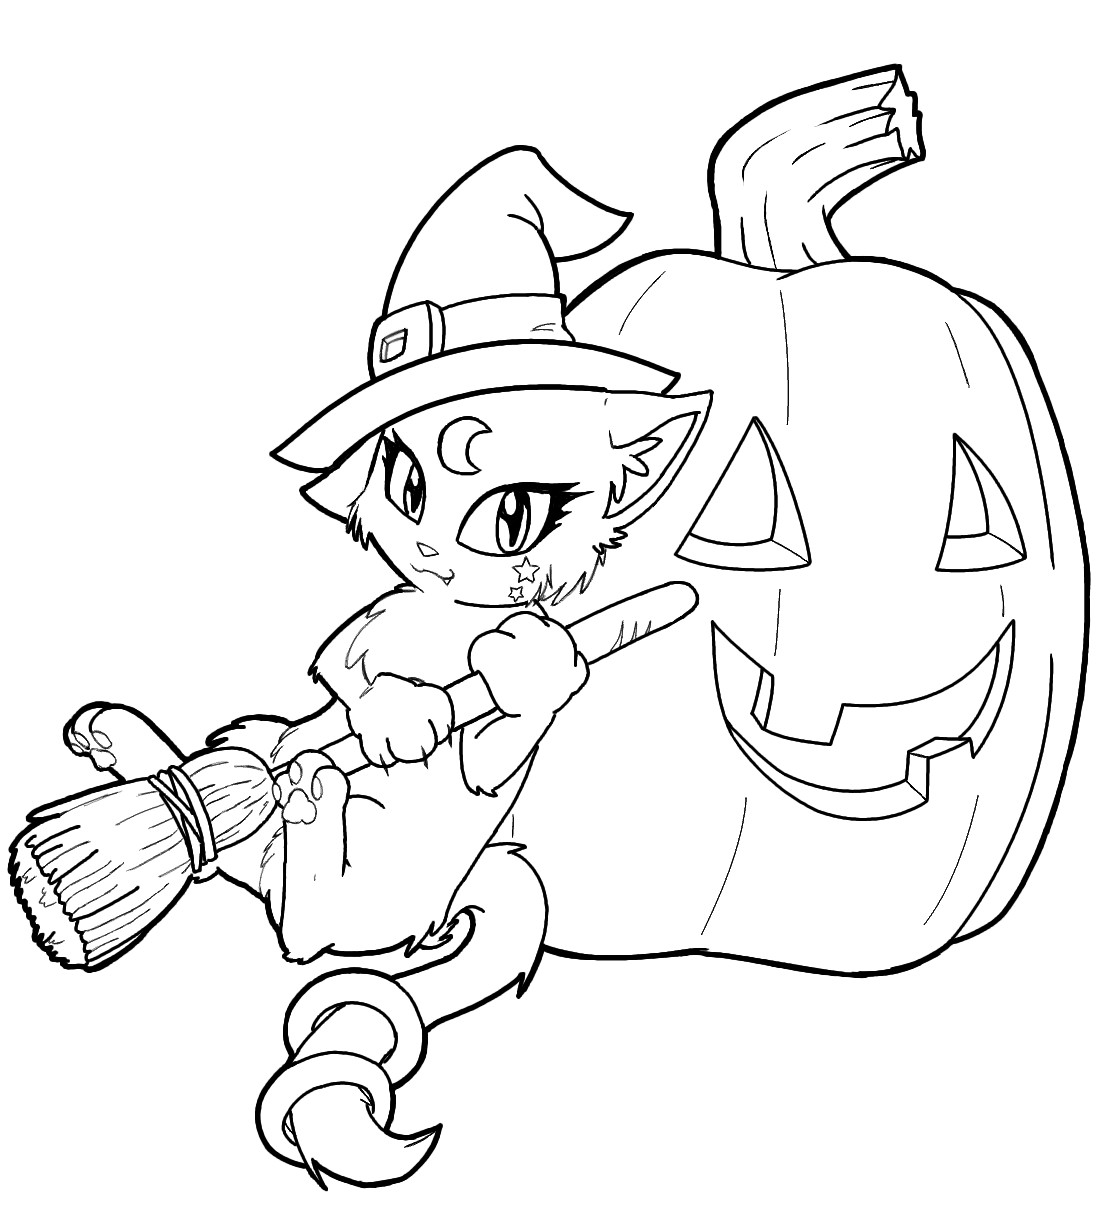 1098x1230 Free Printable Witch Coloring Pages For Kids Striking Acpra